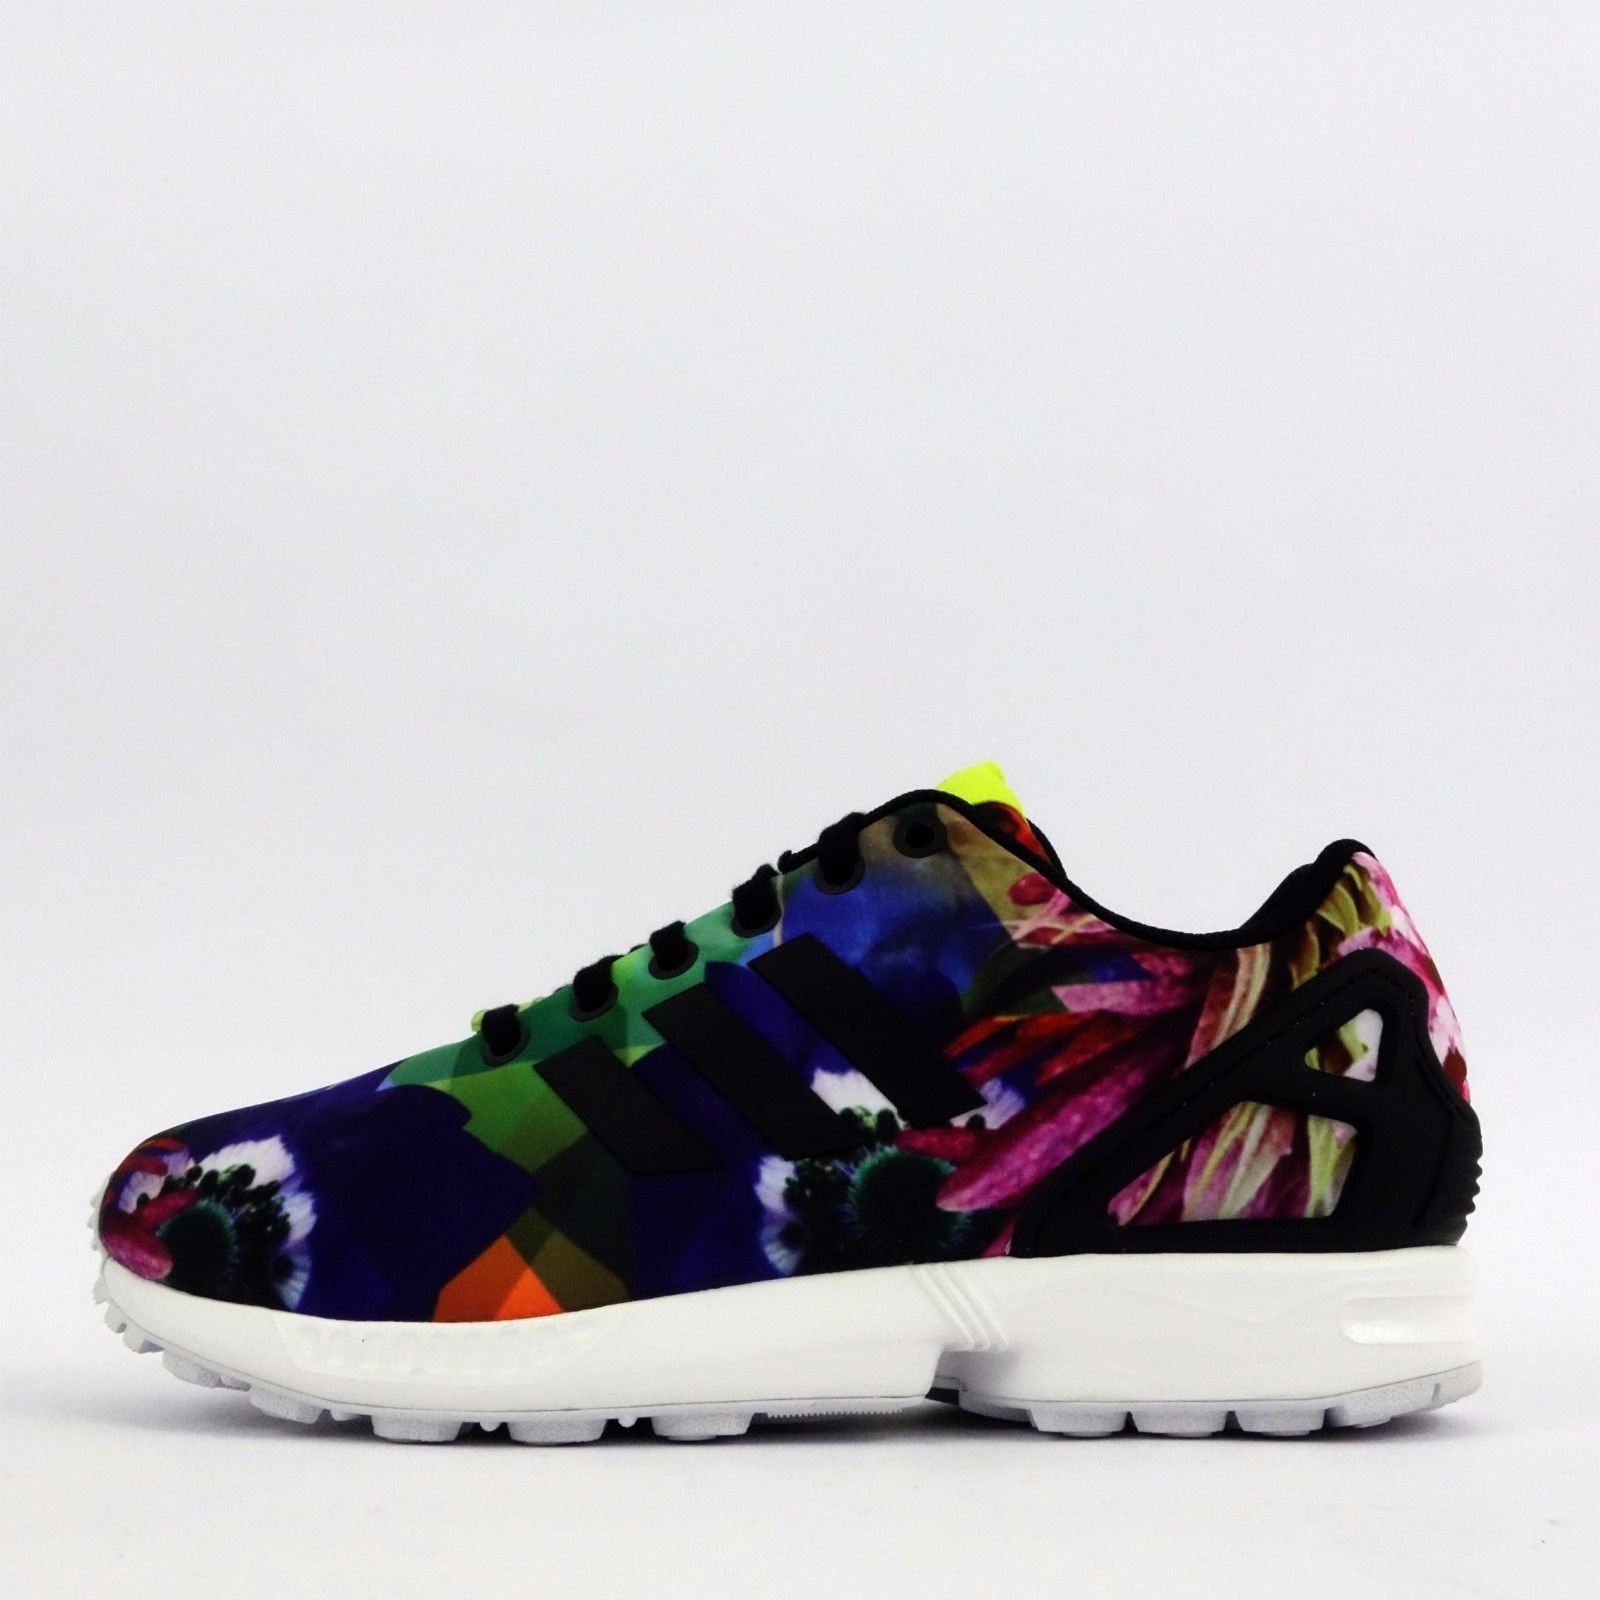 brand new b7b61 0532c Adidas Originals Zx Flux, Men s Shoes, Trainers, Floral Prints, Barcelona,  Printing